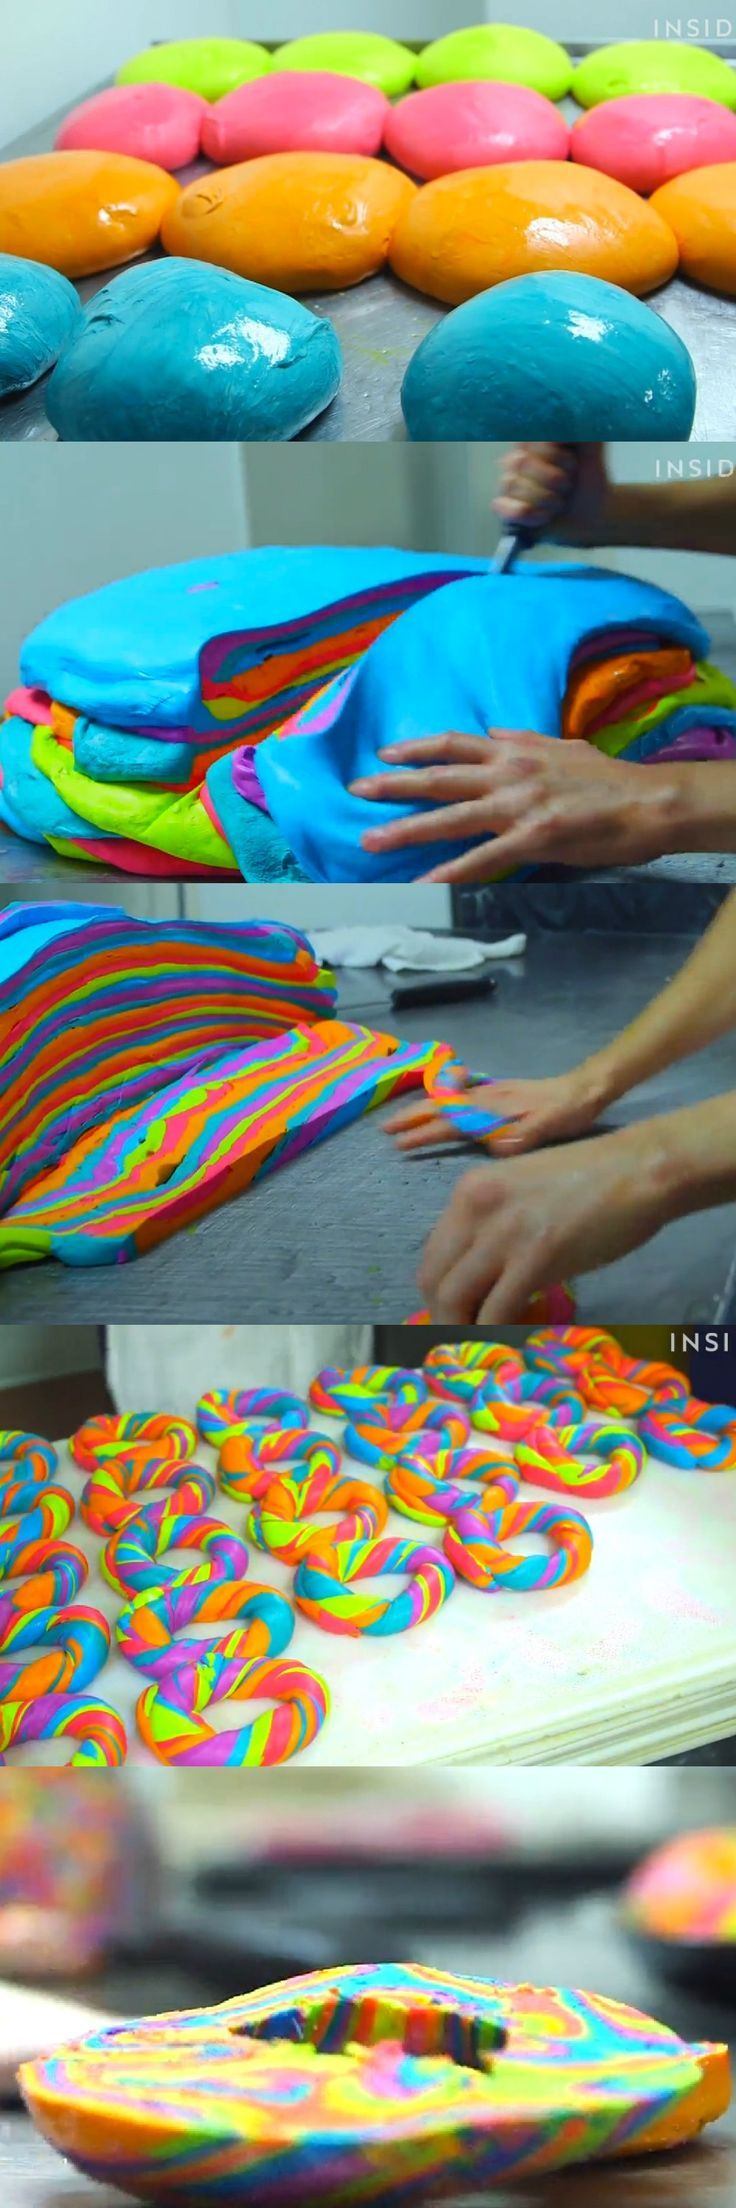 The rainbow bagel from Brooklyn's Bagel Store is the most colorful and wonderful thing we have ever seen. This would be the best breakfast ever!